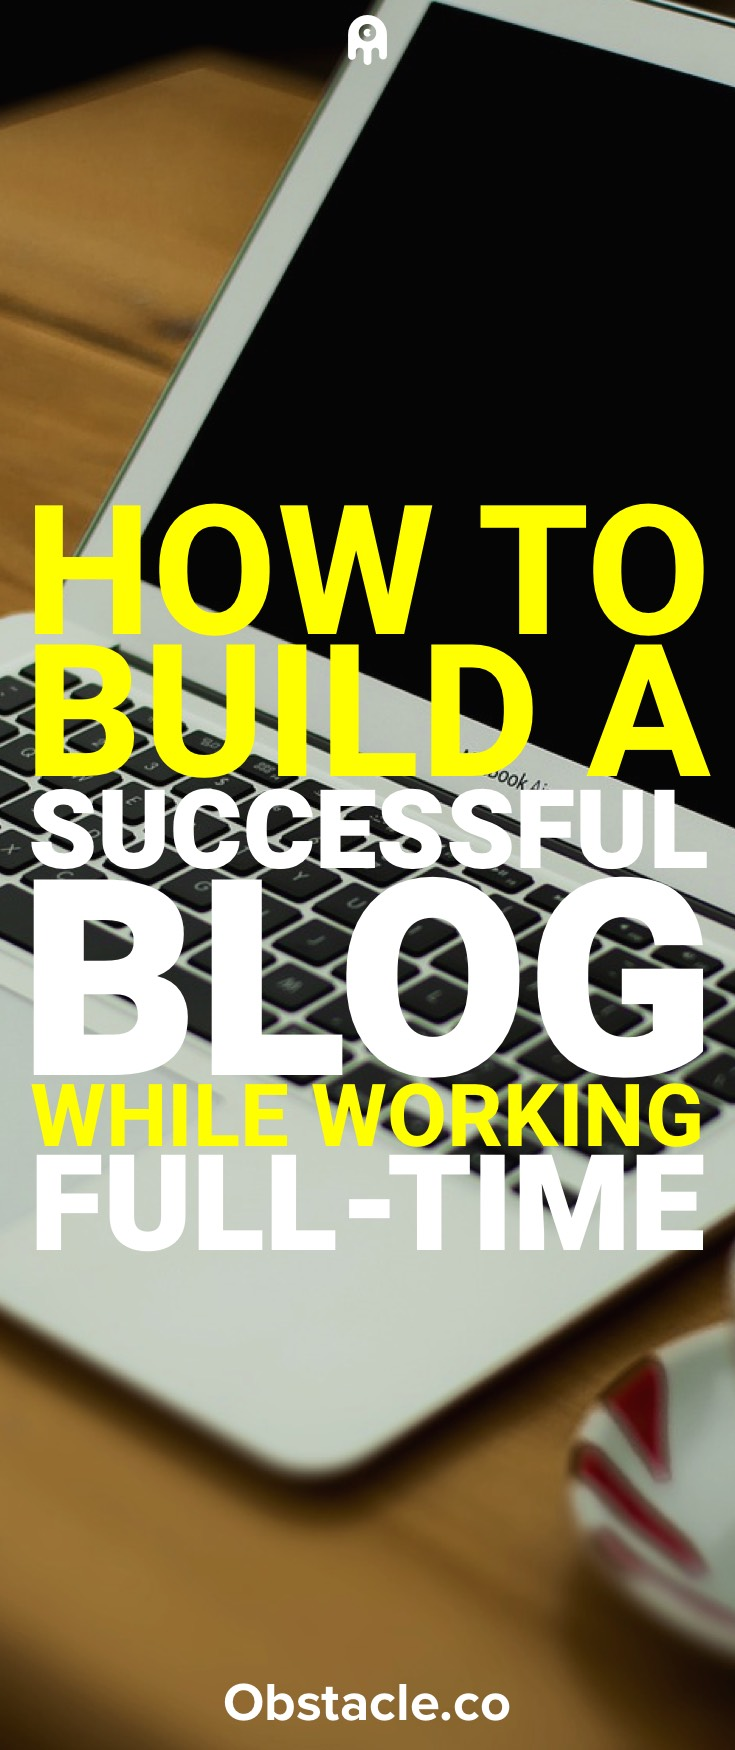 How To Build a Successful Blog While Working Full-Time